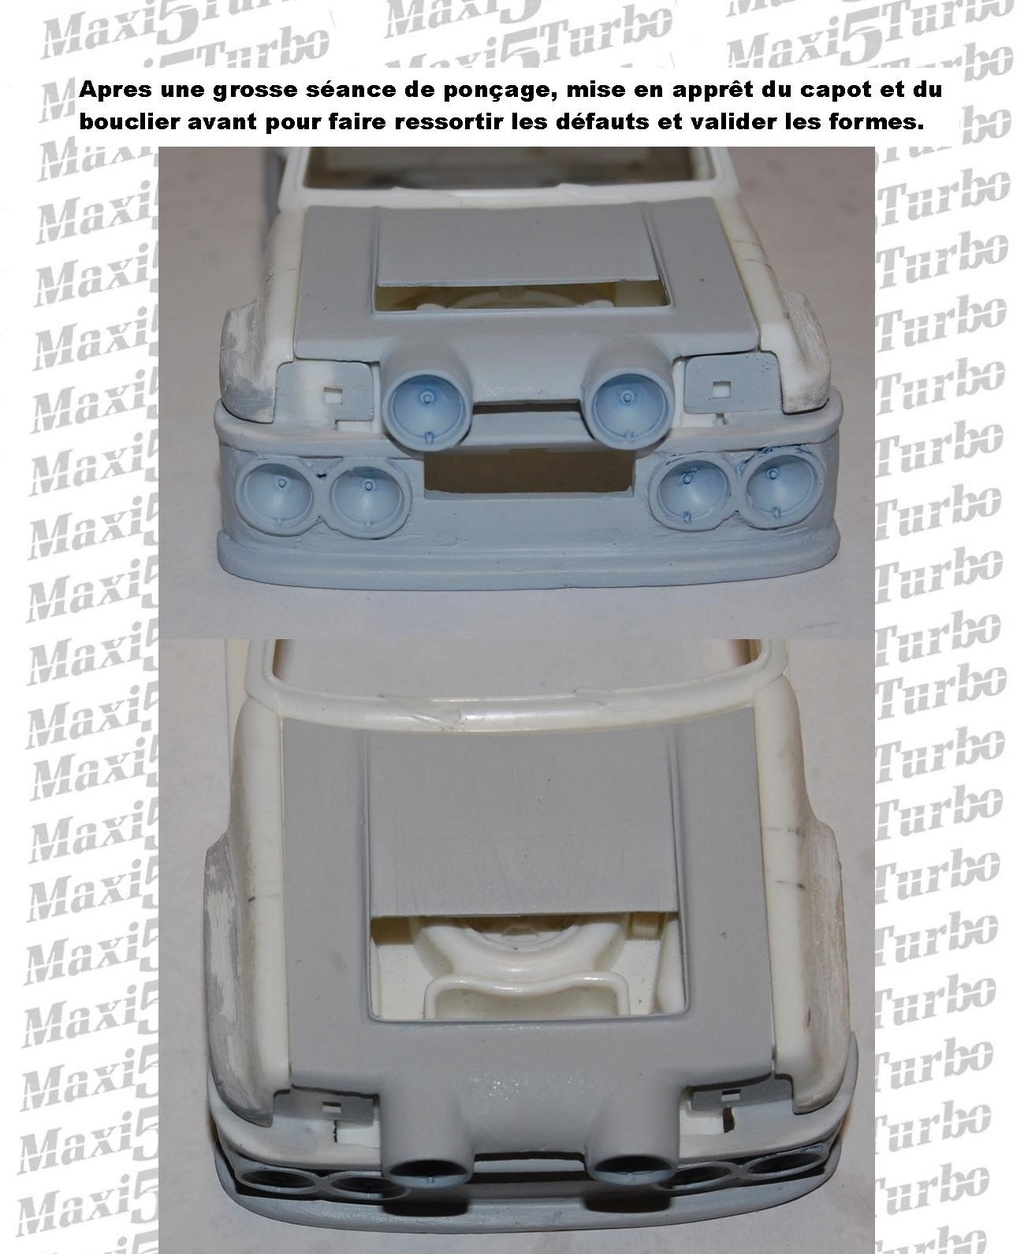 (1/24) Renault 5 Maxi turbo Ref 80717 ( Hors delai ) - Page 2 3912